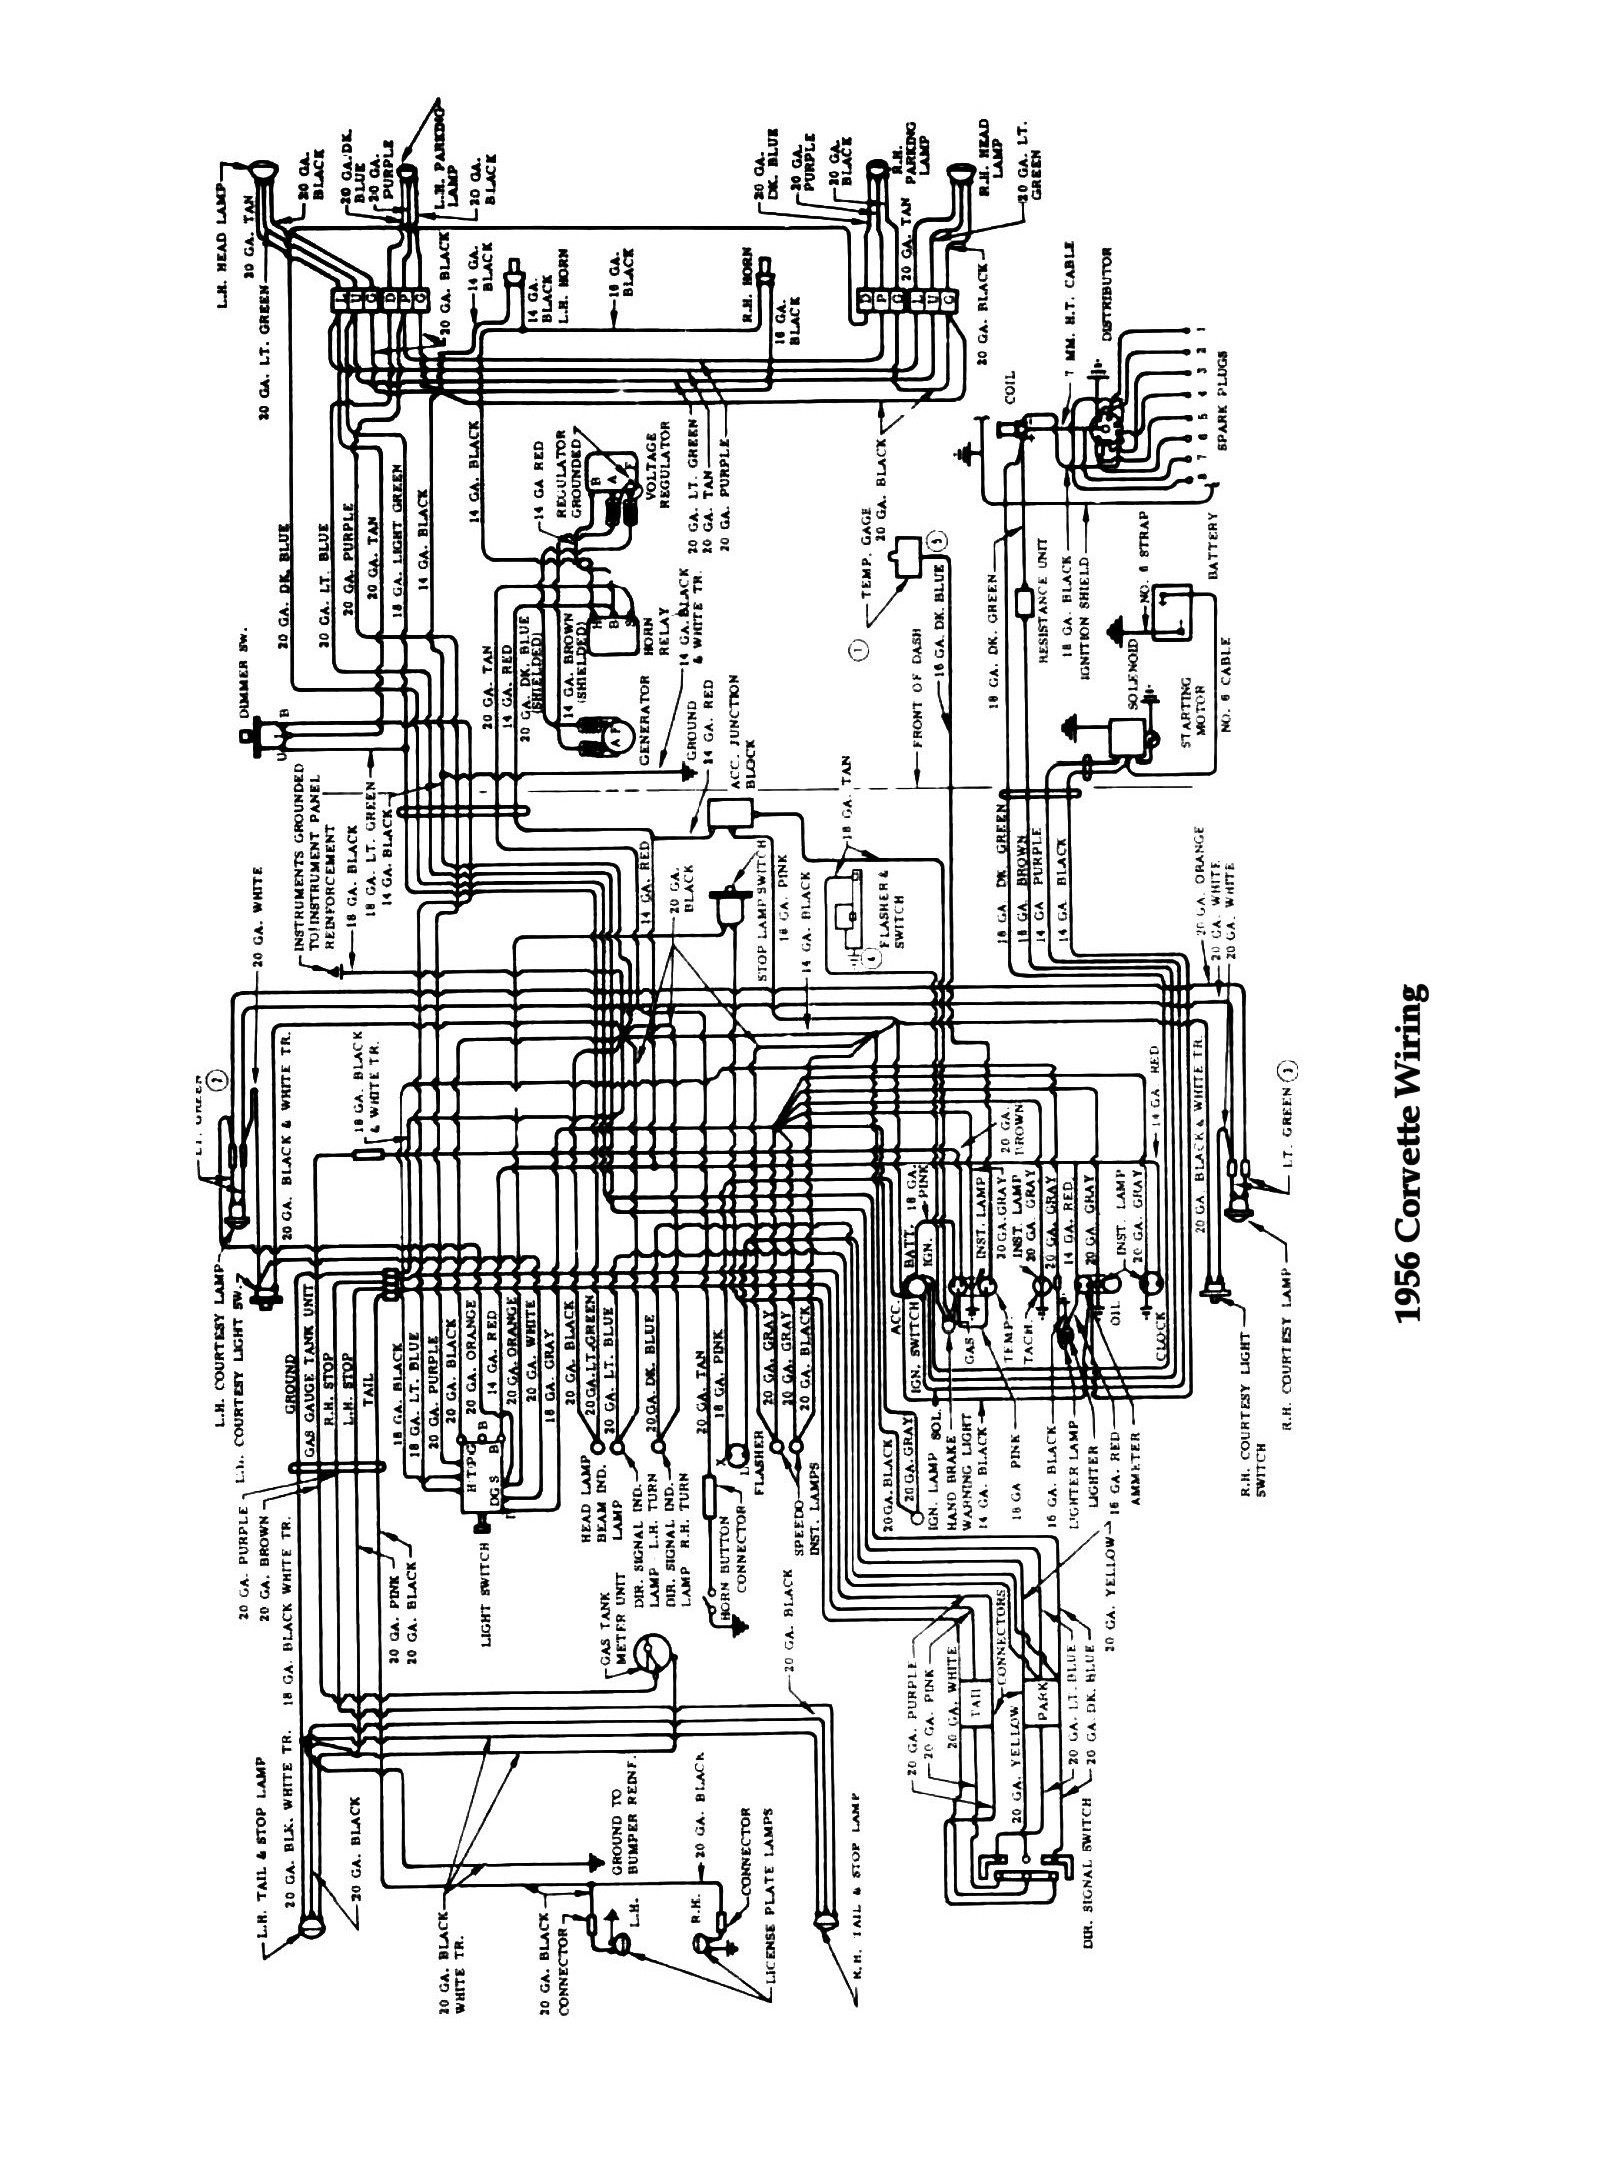 56corvette chevy wiring diagrams 1984 corvette wiring diagram schematic at mifinder.co